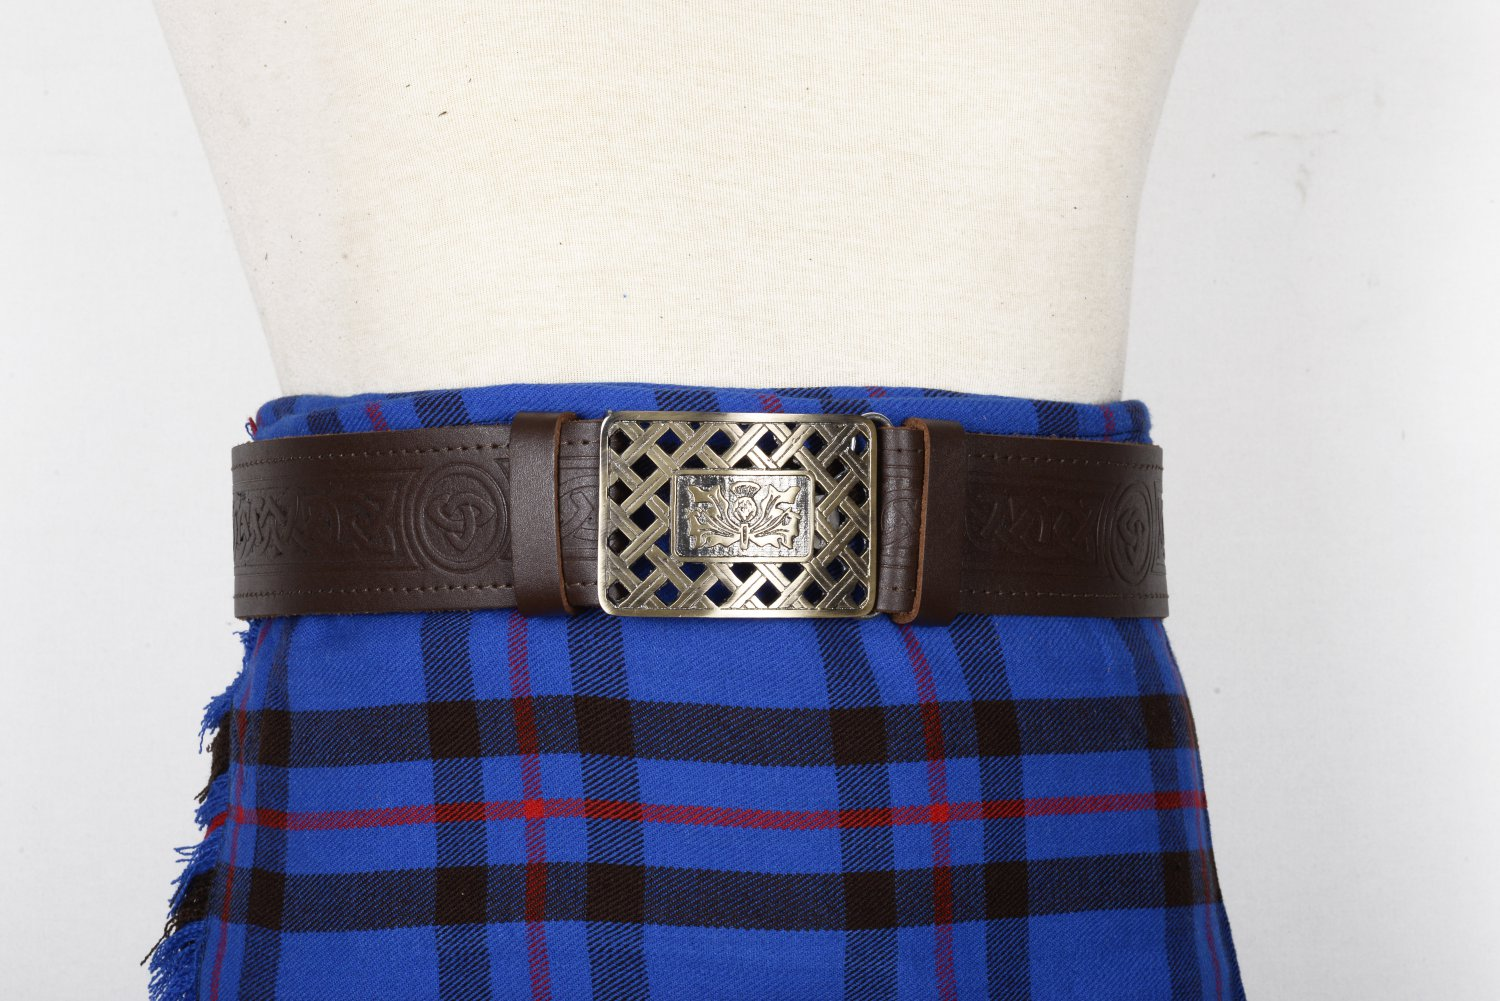 Traditional Scottish Leather Brown Kilt Belt -trinity Knot Celtic Embossing - Free Buckle Size 52